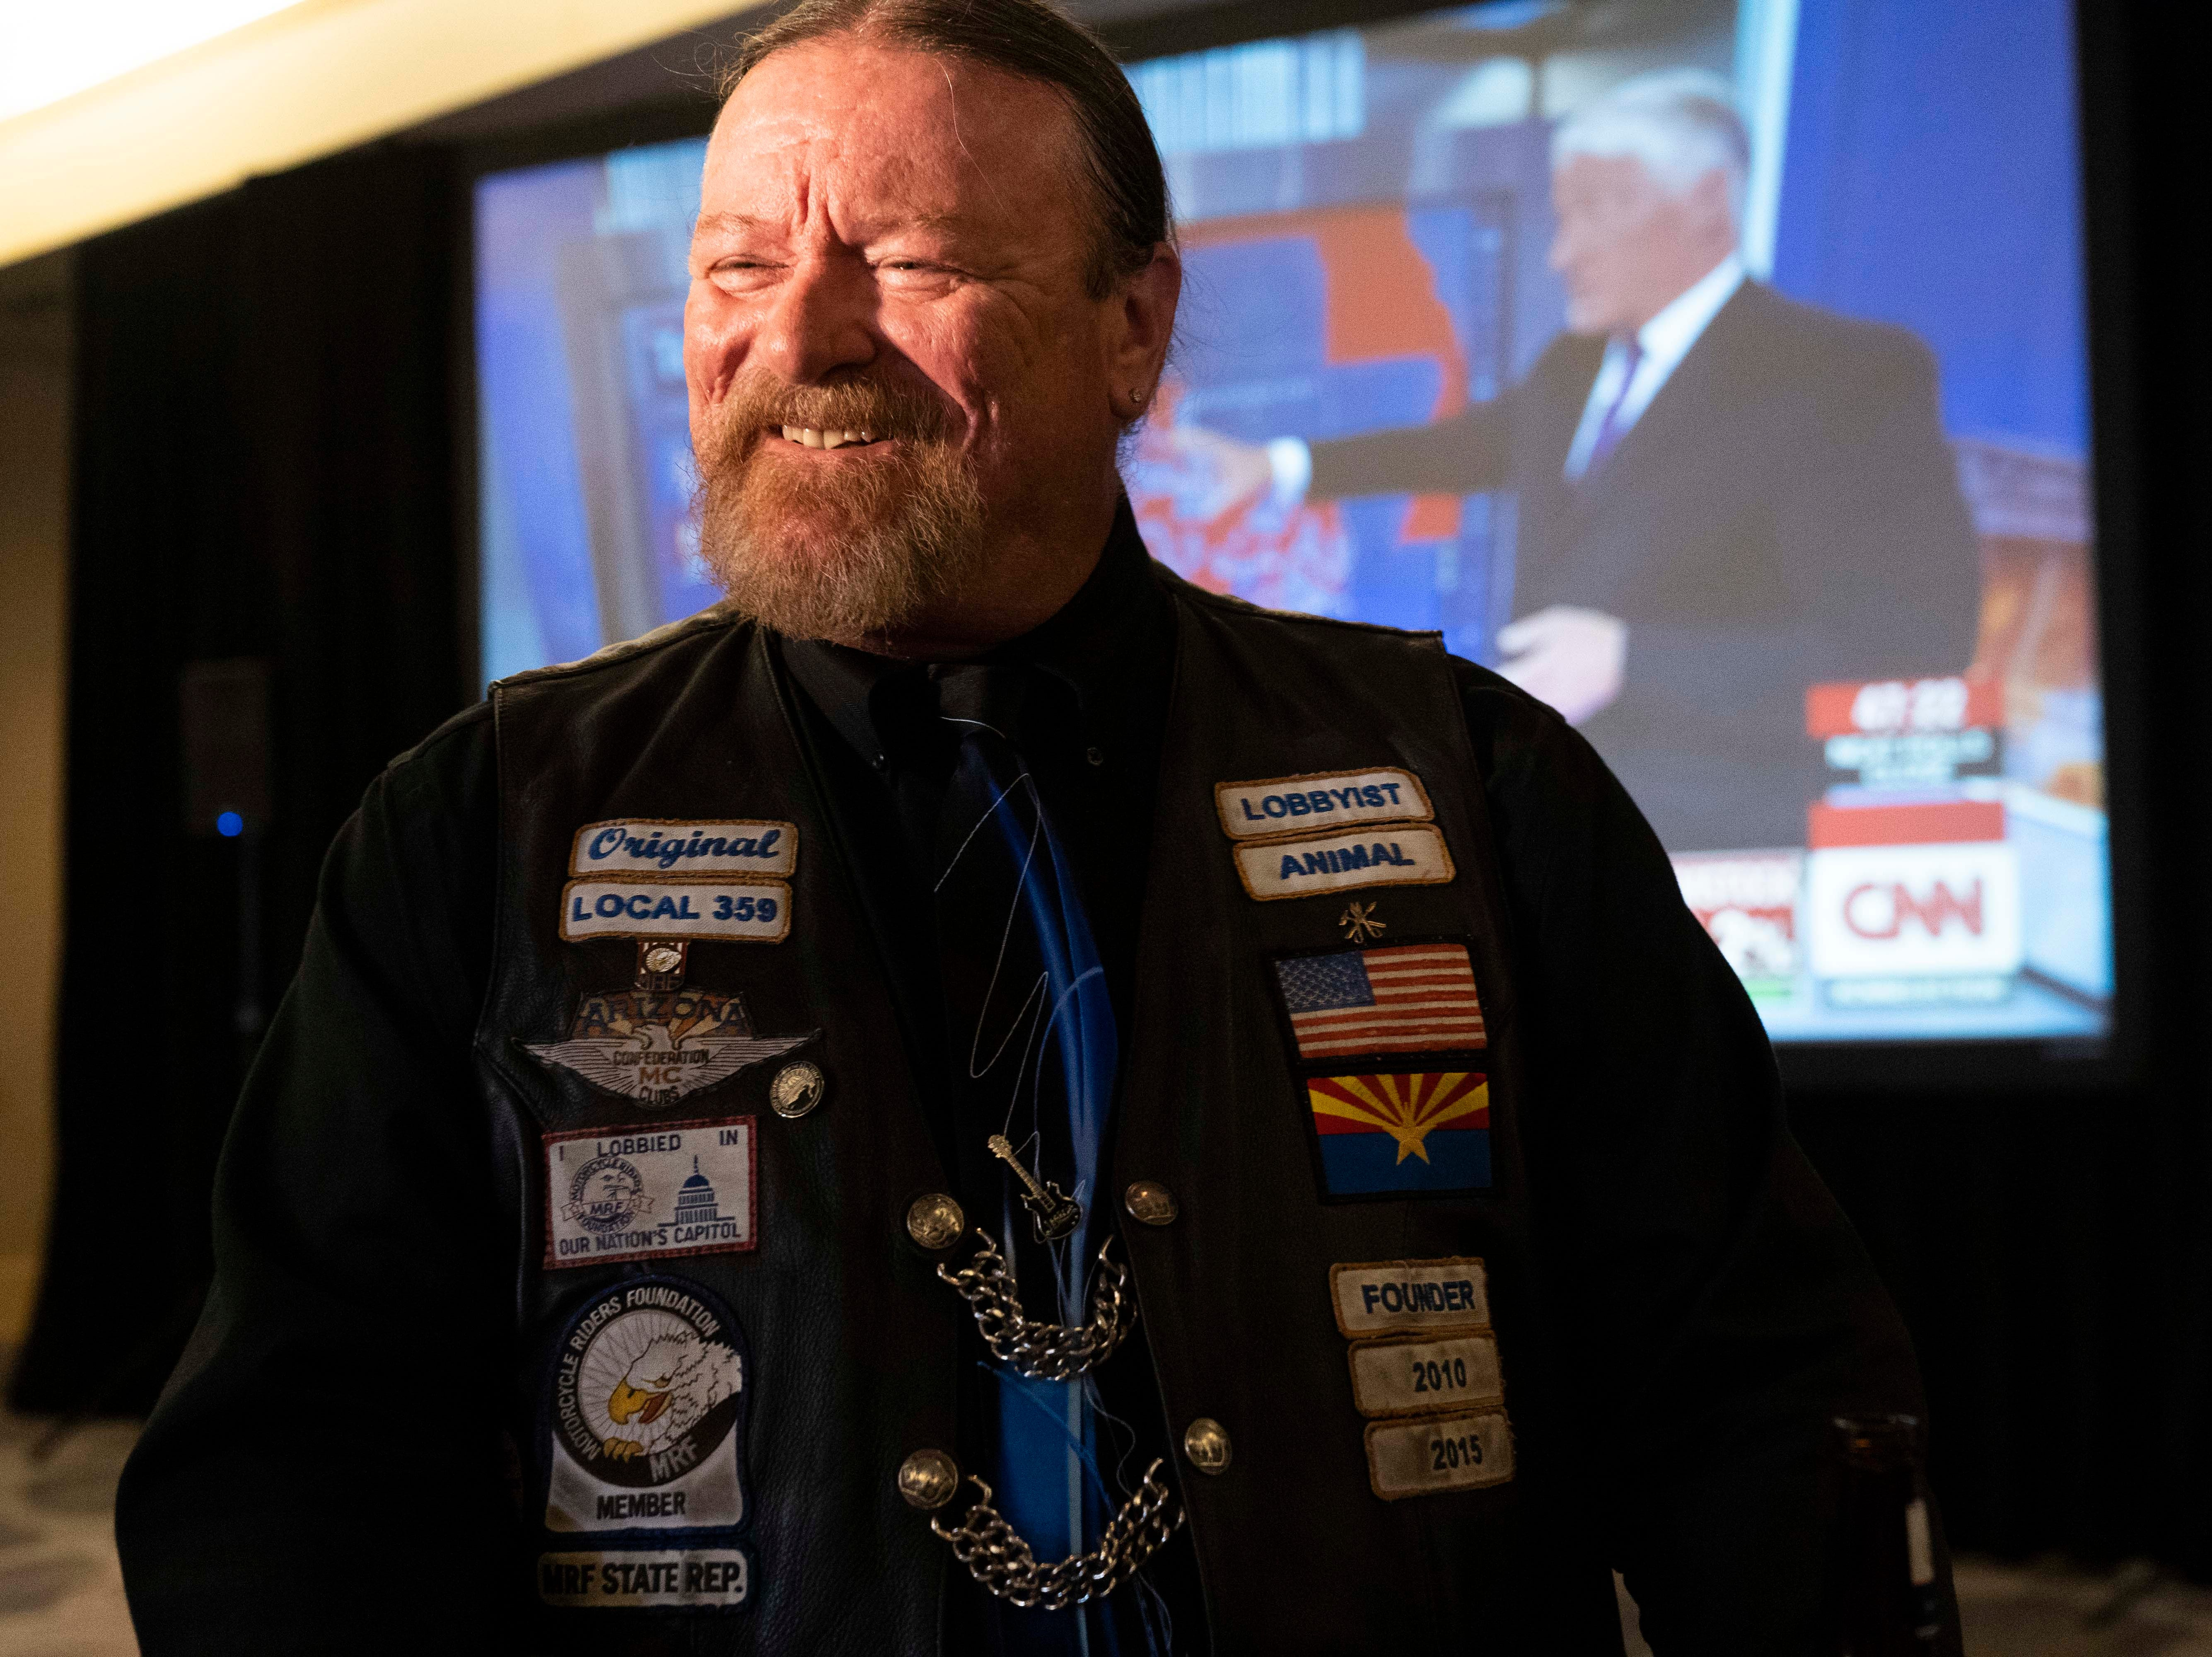 Democrat supporter Dale Dedrick cheers after hearing national results on CNN at the Renaissance Phoenix Downtown Hotel on Nov. 6, 2018.